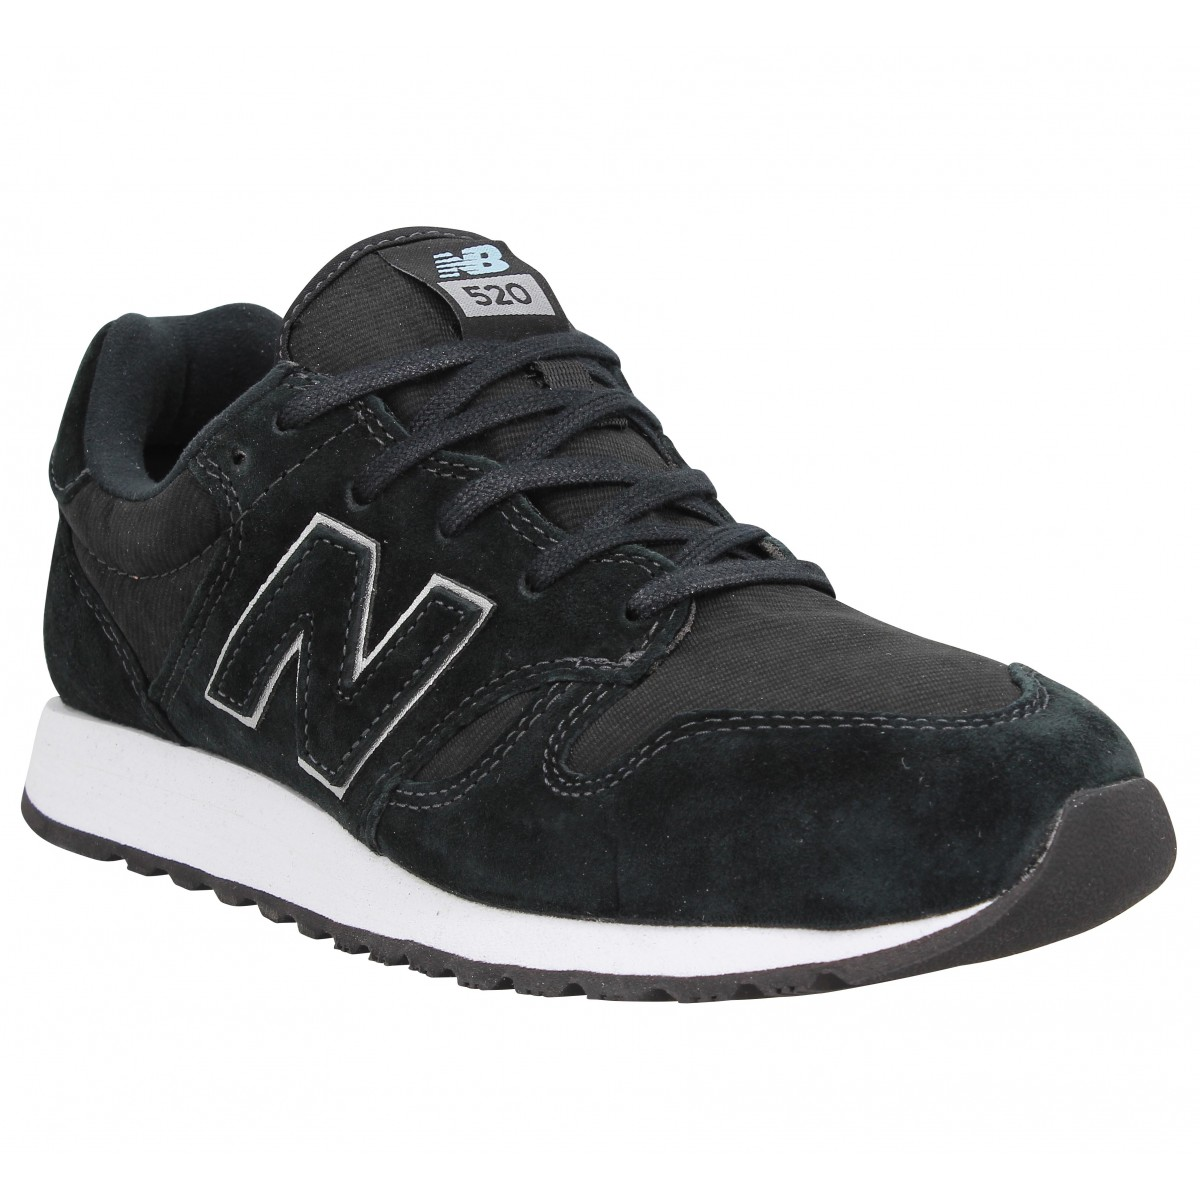 New Balance Marque Wl 520 Velours Toile...